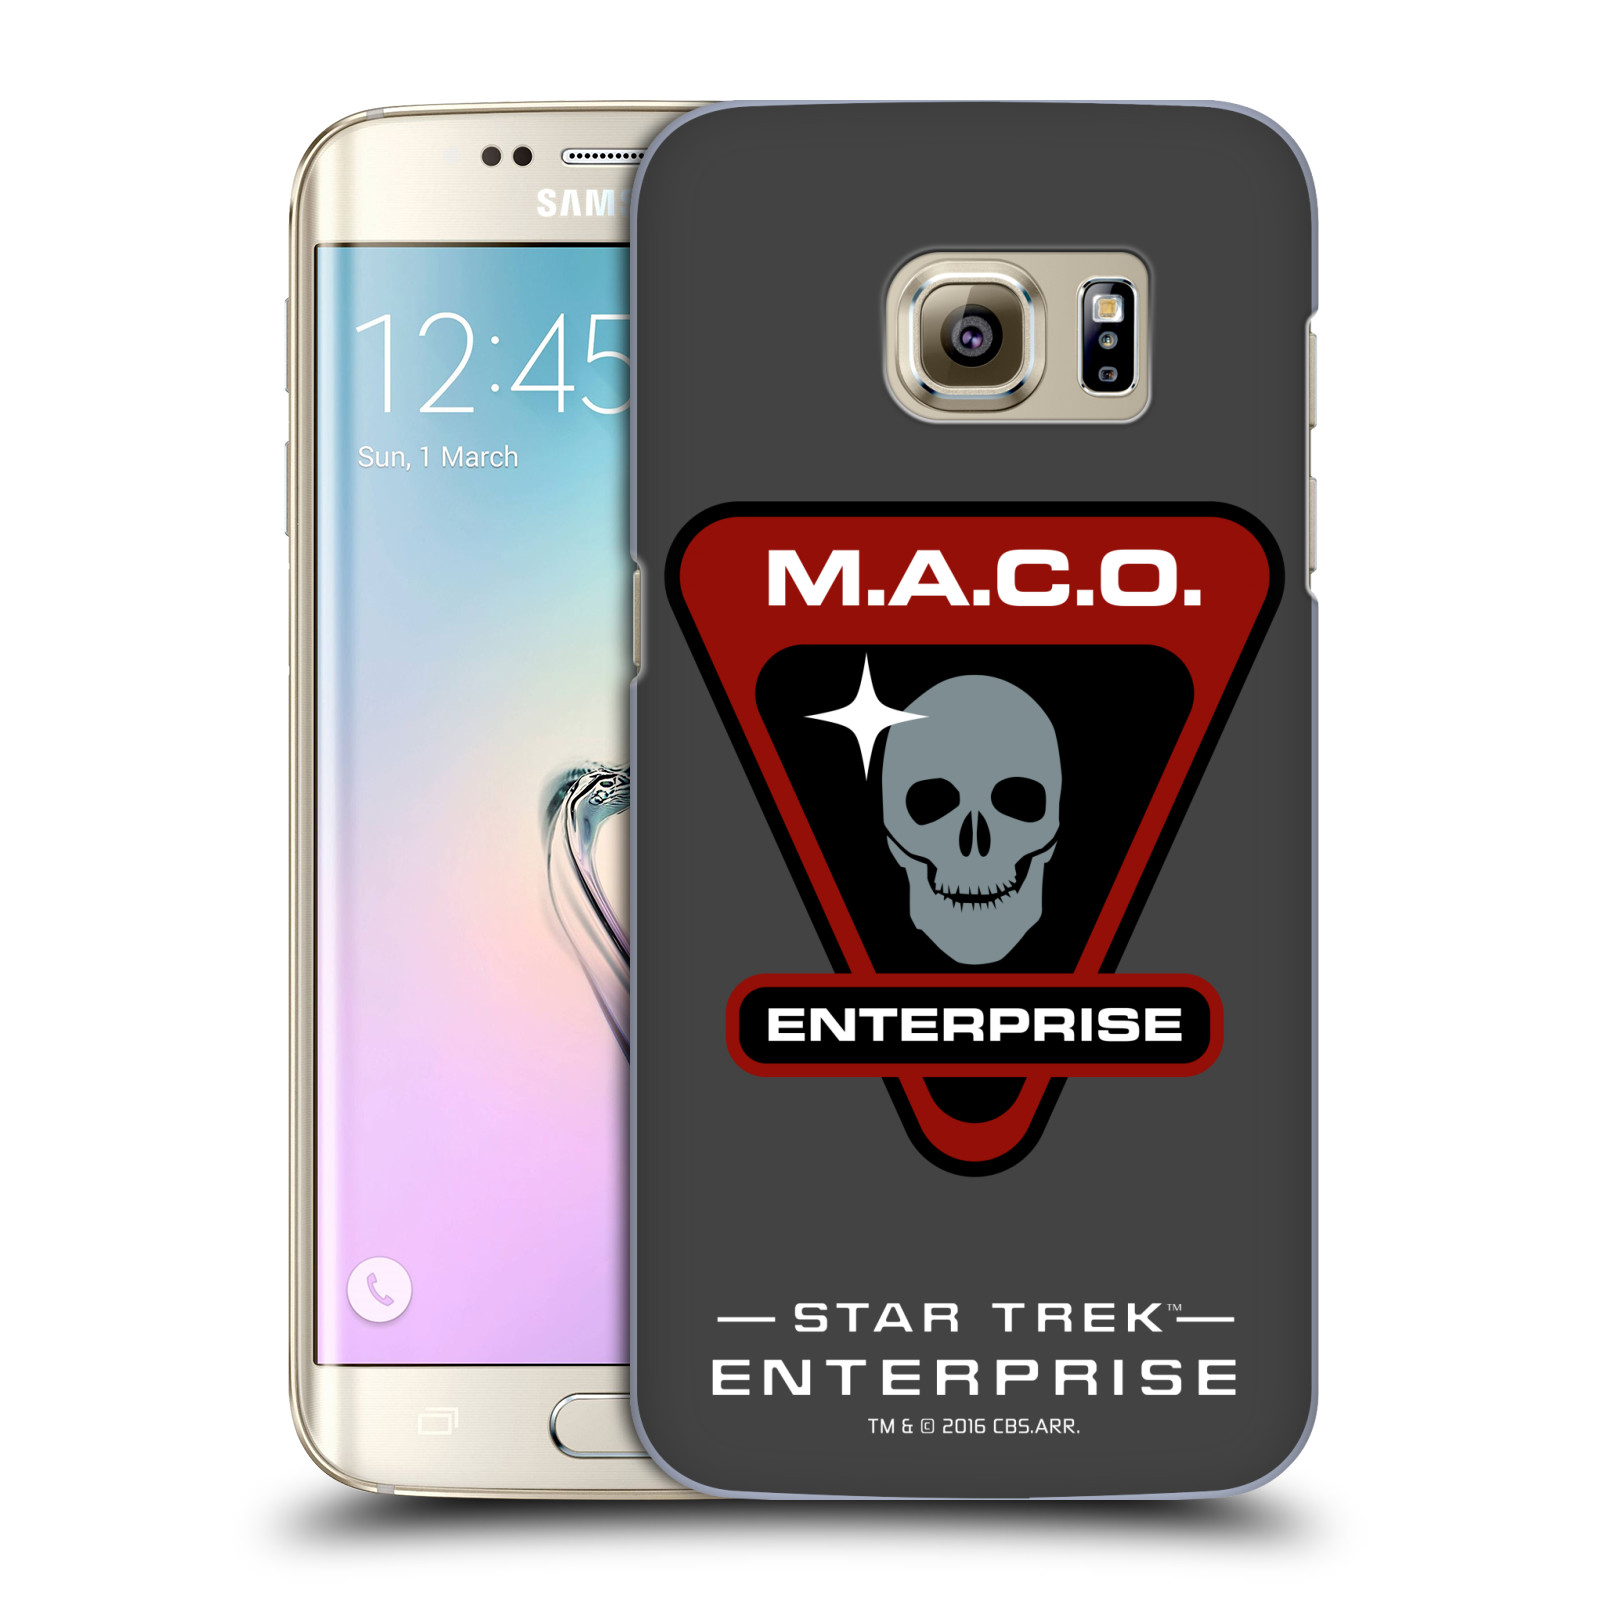 OFFICIAL STAR TREK MIRROR UNIVERSE BADGES ENT HARD BACK CASE FOR SAMSUNG PHONES 1